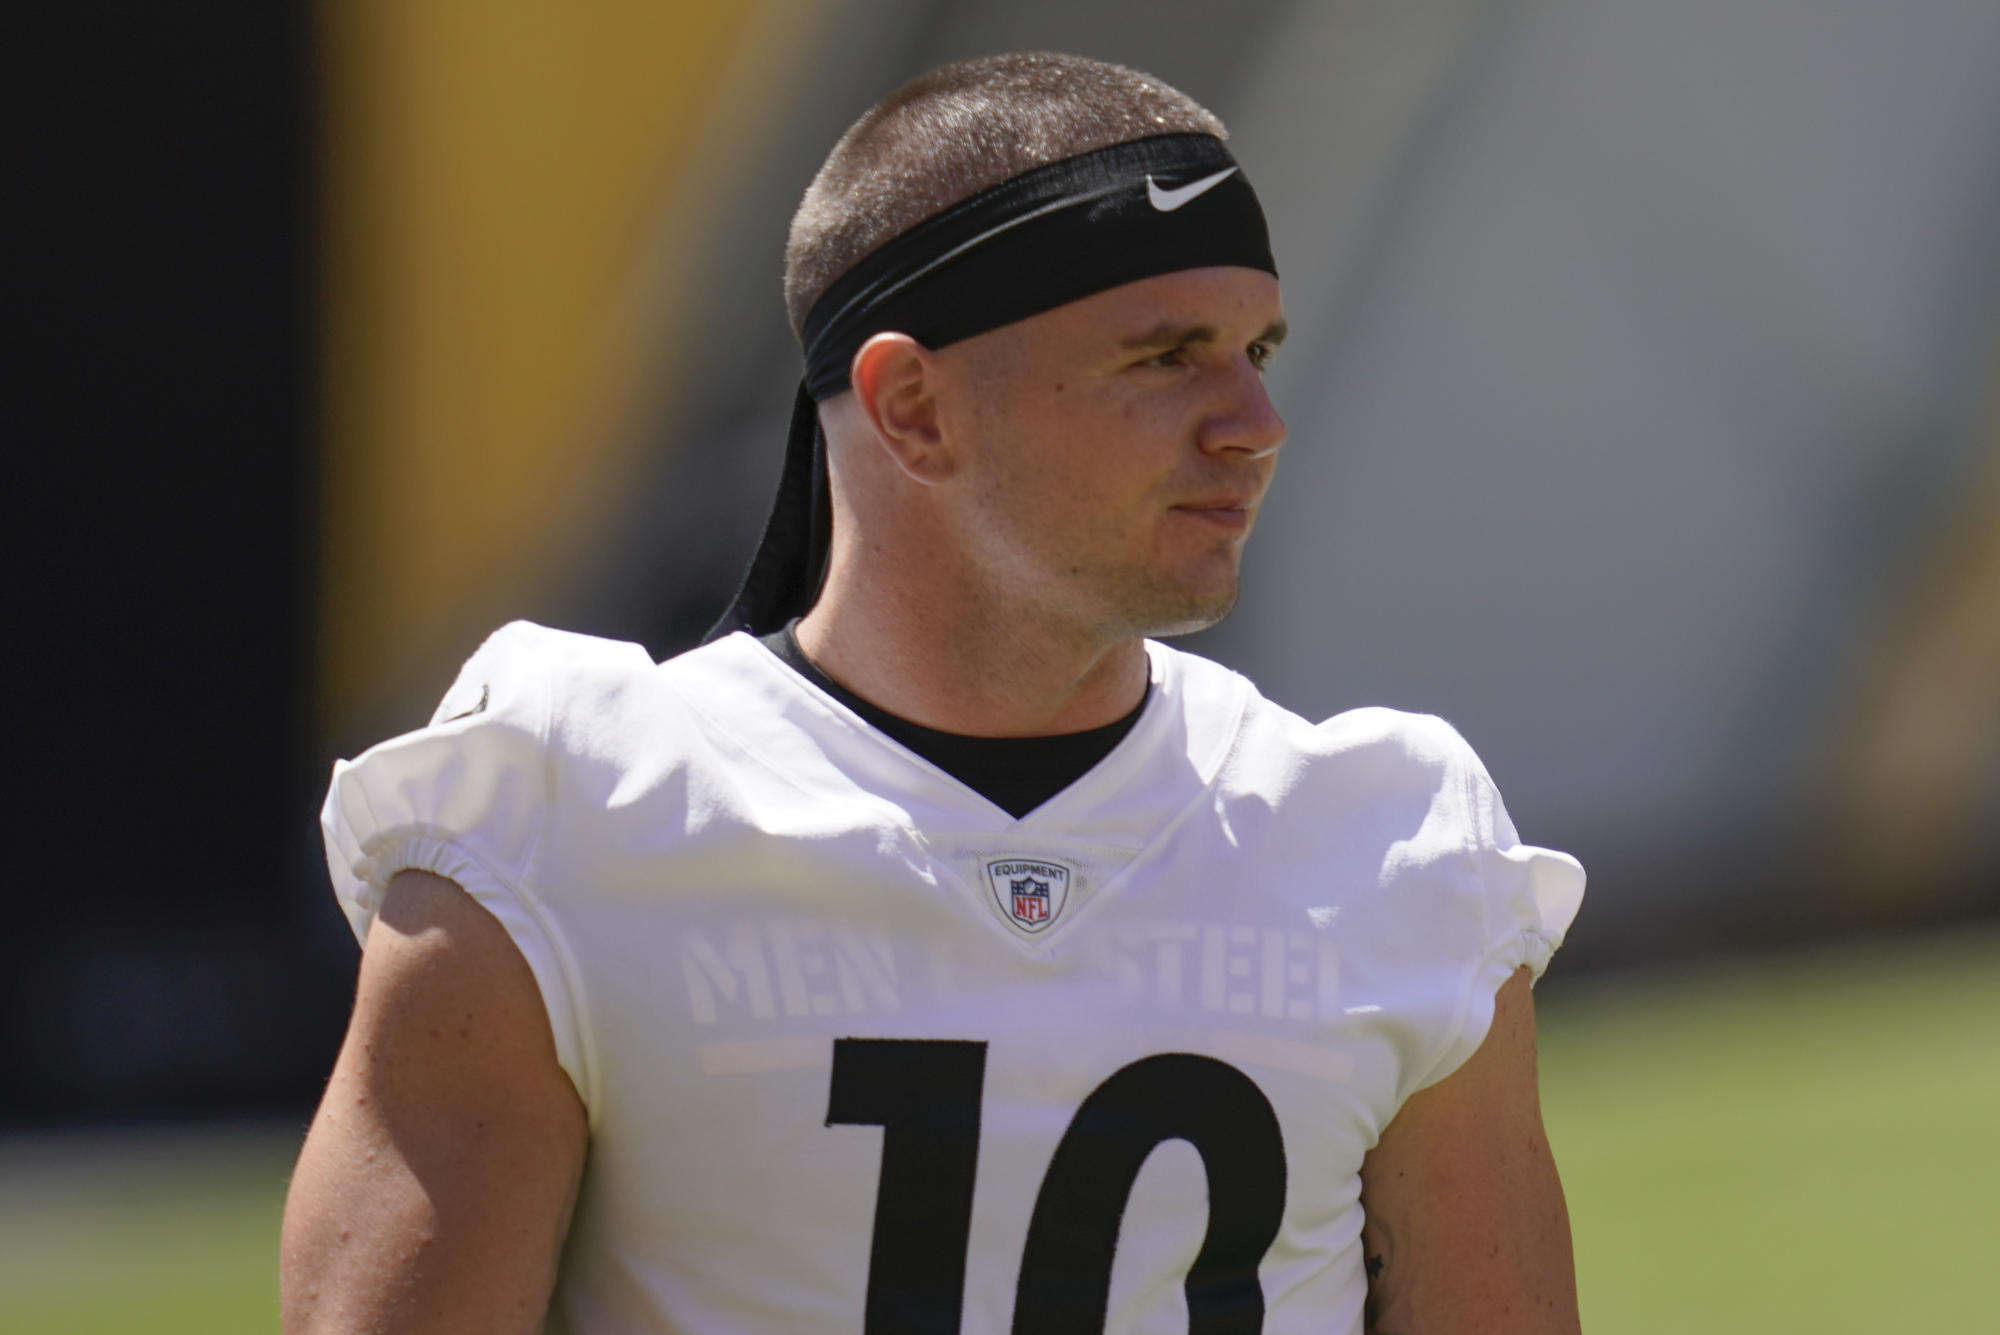 Browns' Ryan Switzer says 9-month-old son back in hospital